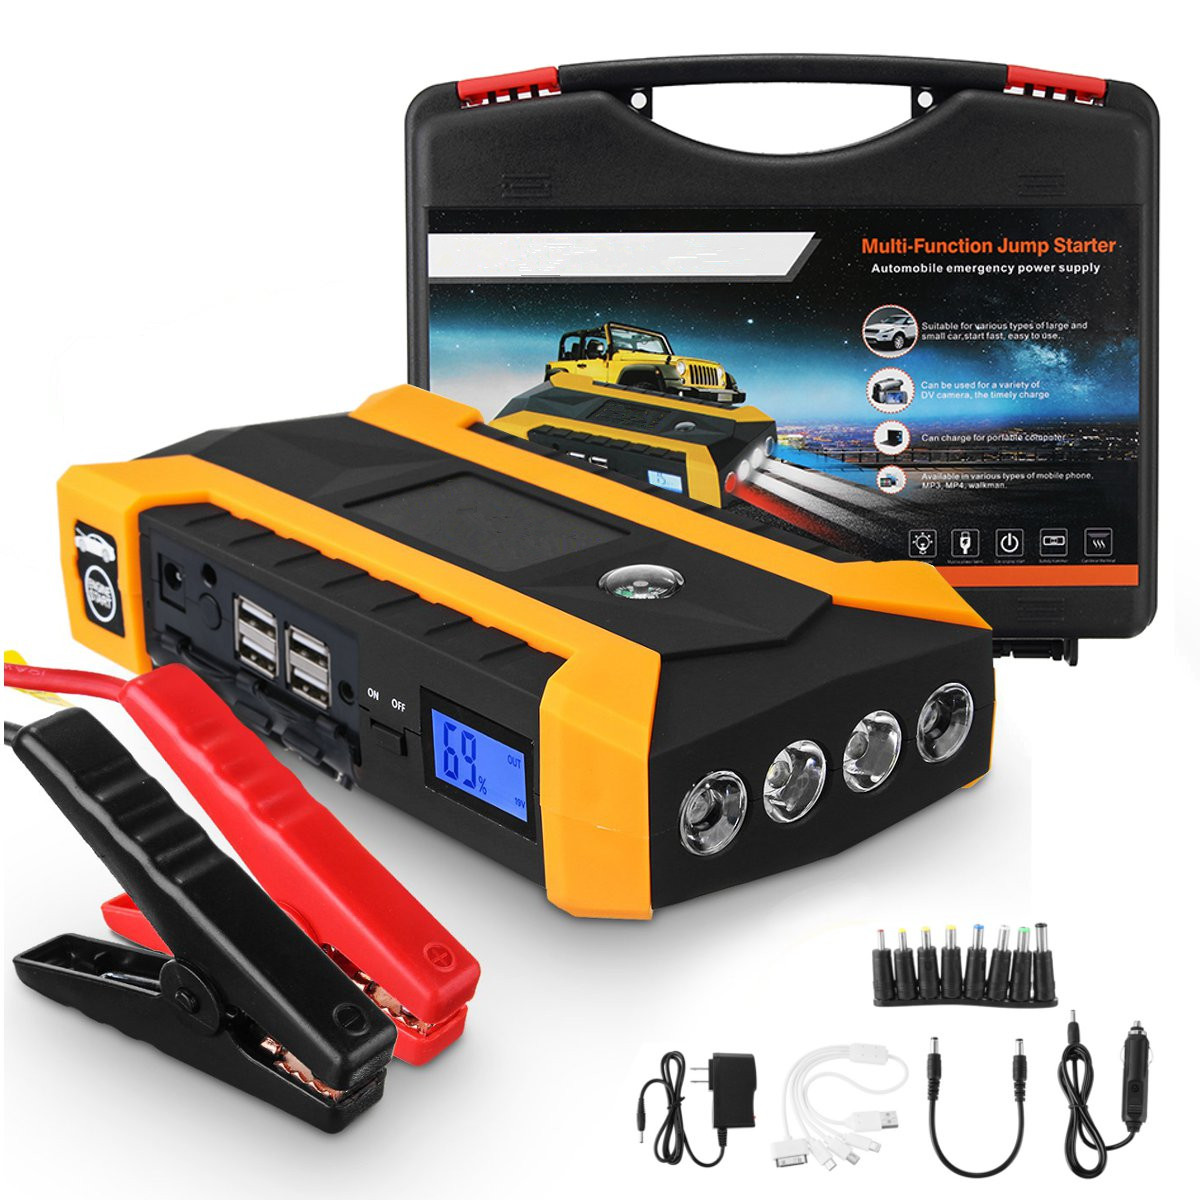 Multifunction Jump Starter 89800mAh 12V 4USB 600A Portable Car Battery Booster Charger Booster Power Bank Starting Device брюки утепленные детские huppa tevin 1 цвет серый 21770104 00048 размер 170